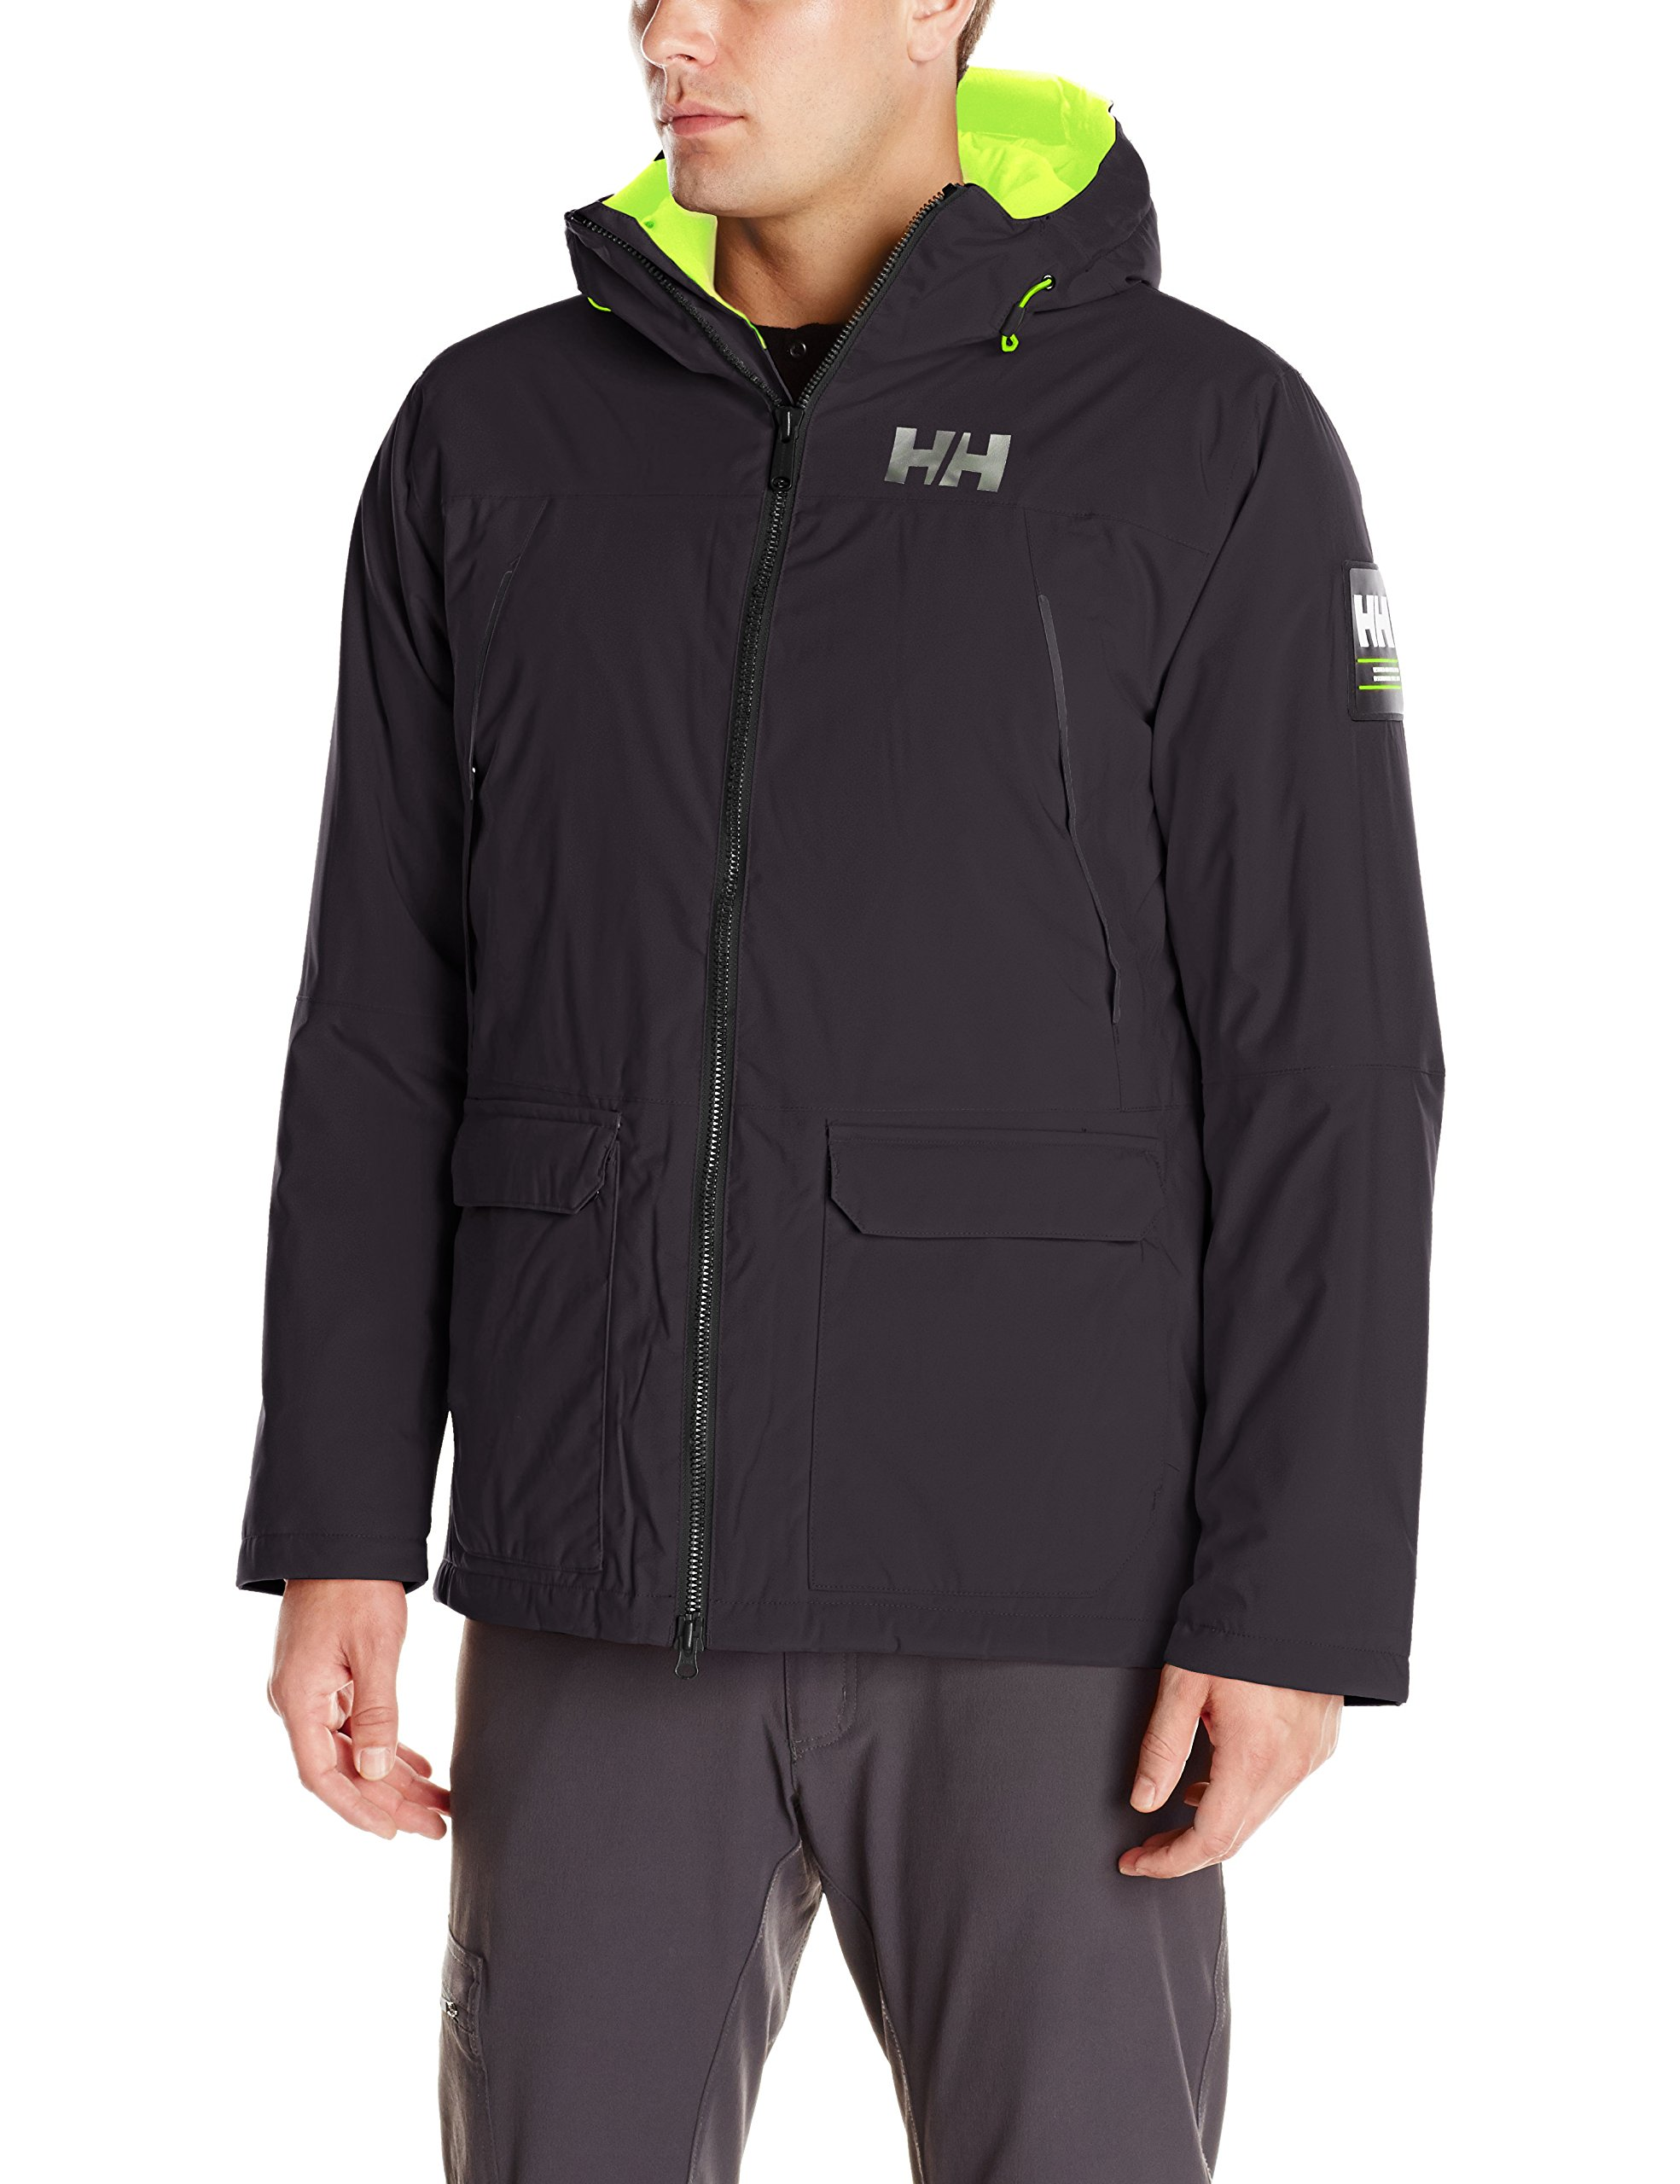 Helly Hansen Shoreline Parka, Ebony, Small